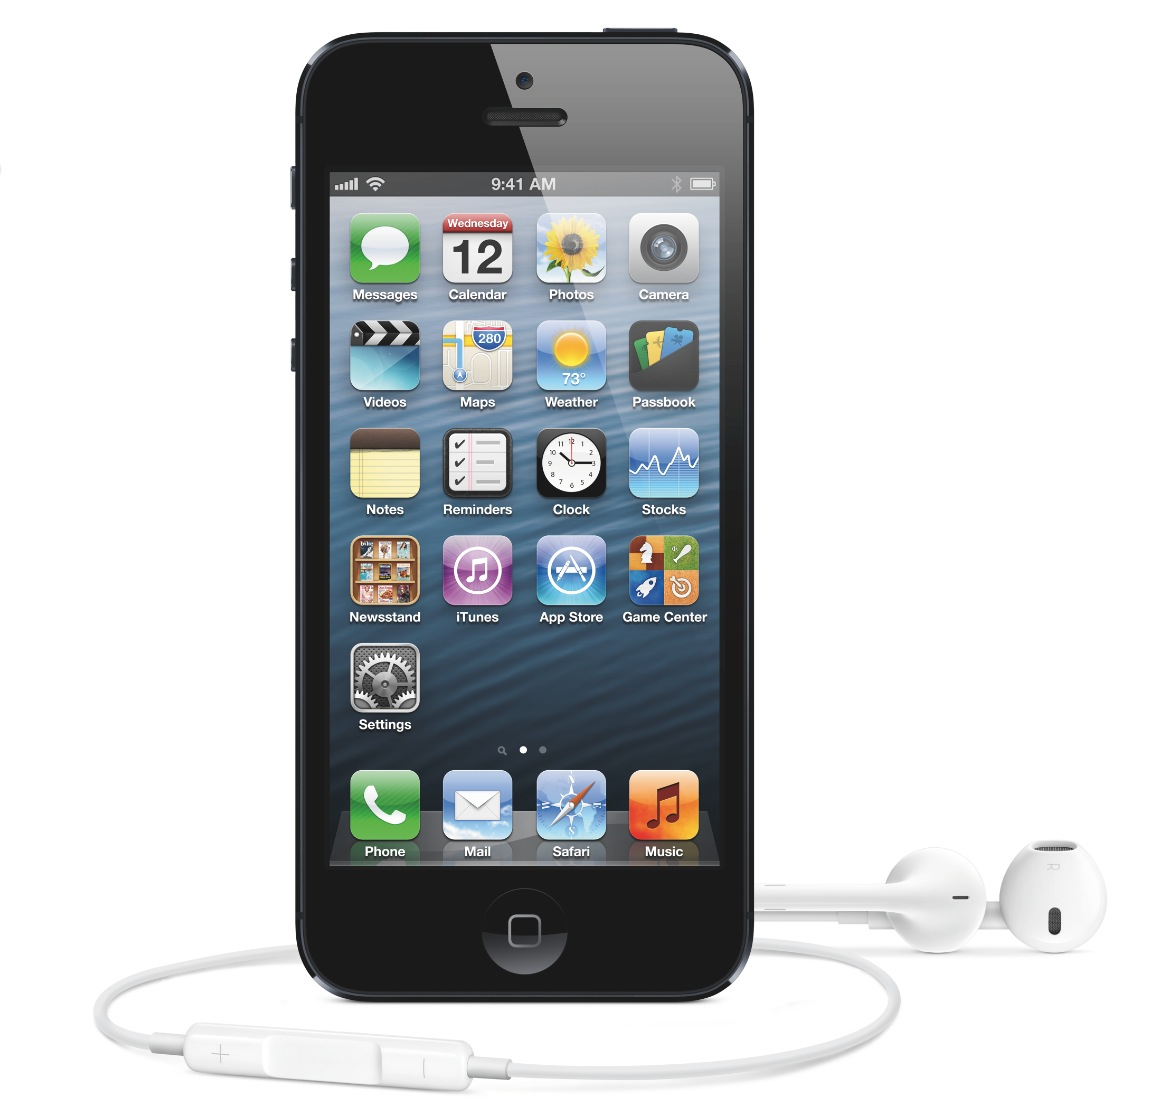 When is iPhone 5s coming out